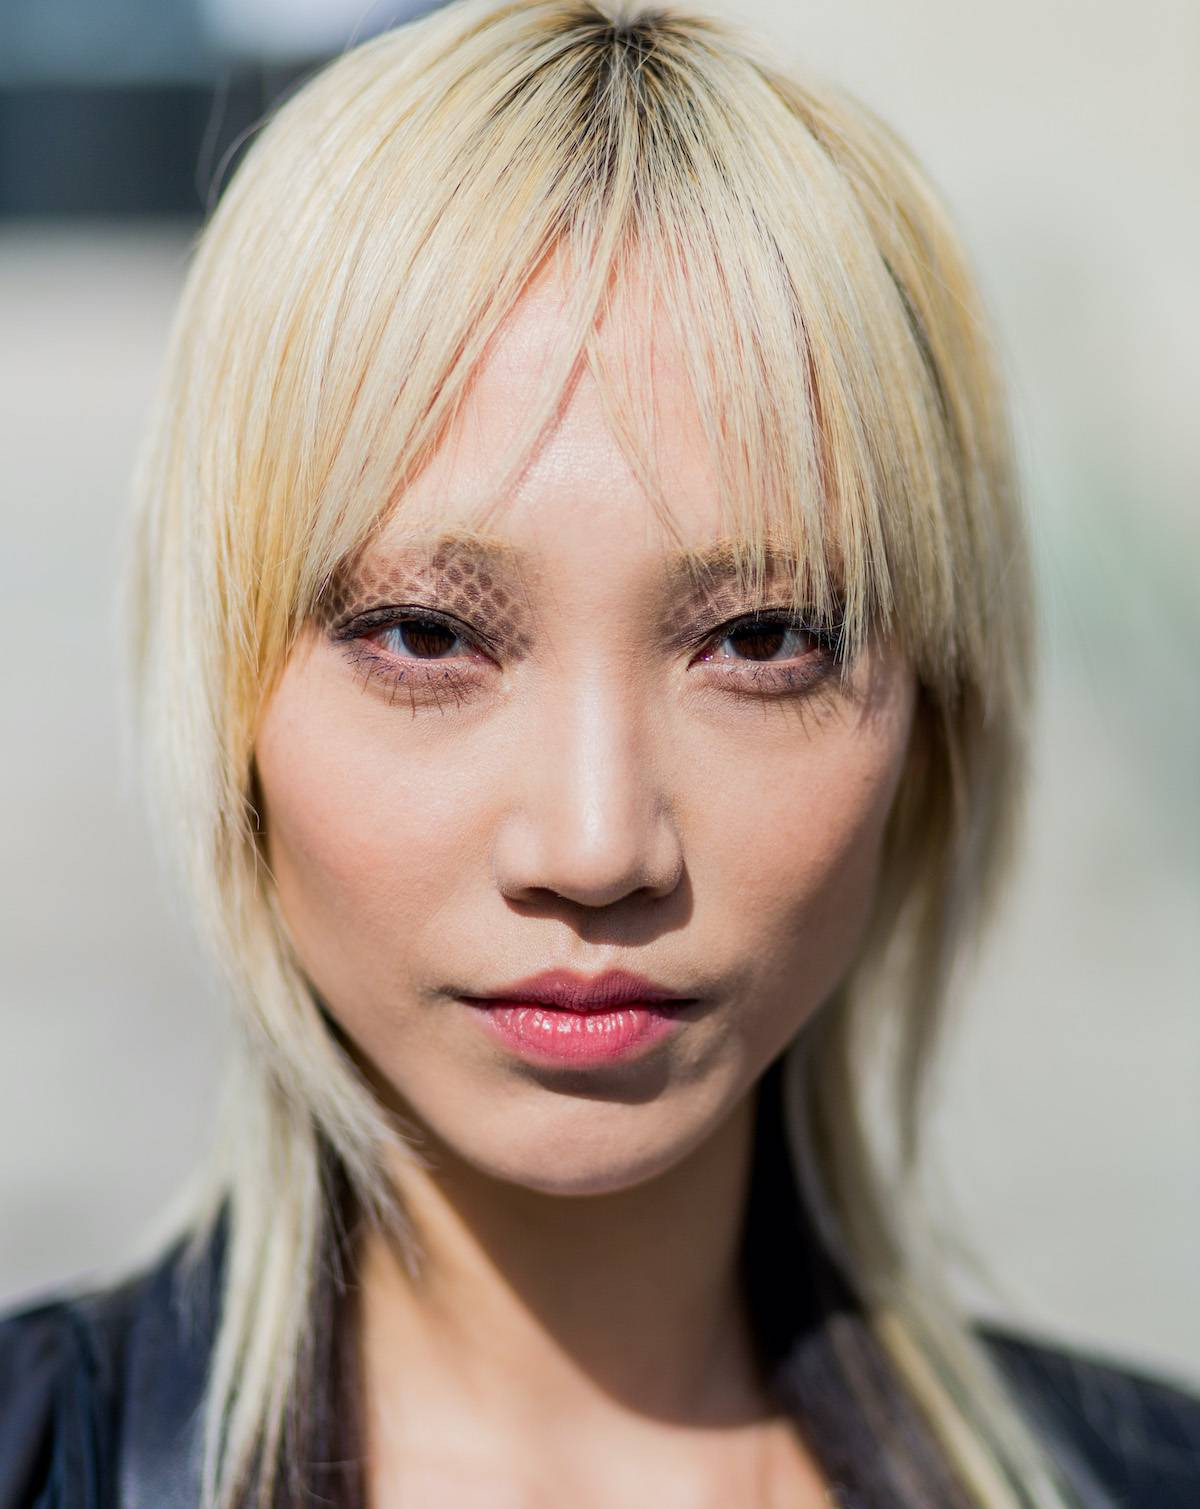 Soo Joo Park / Fot. Christian Vierig/Getty Images)